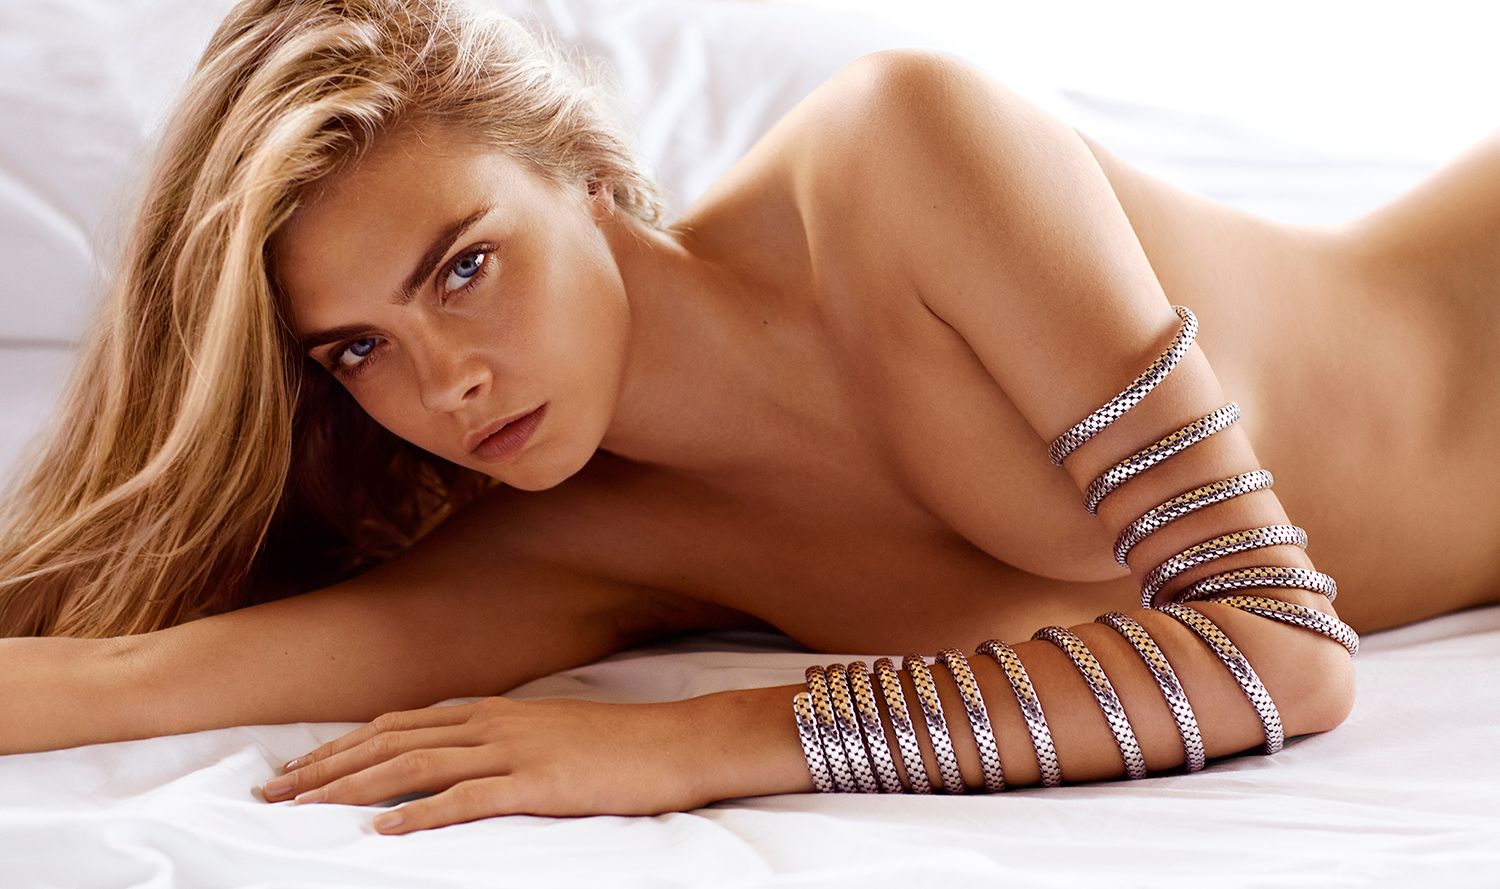 Cara-Delevingne-Creation5-4